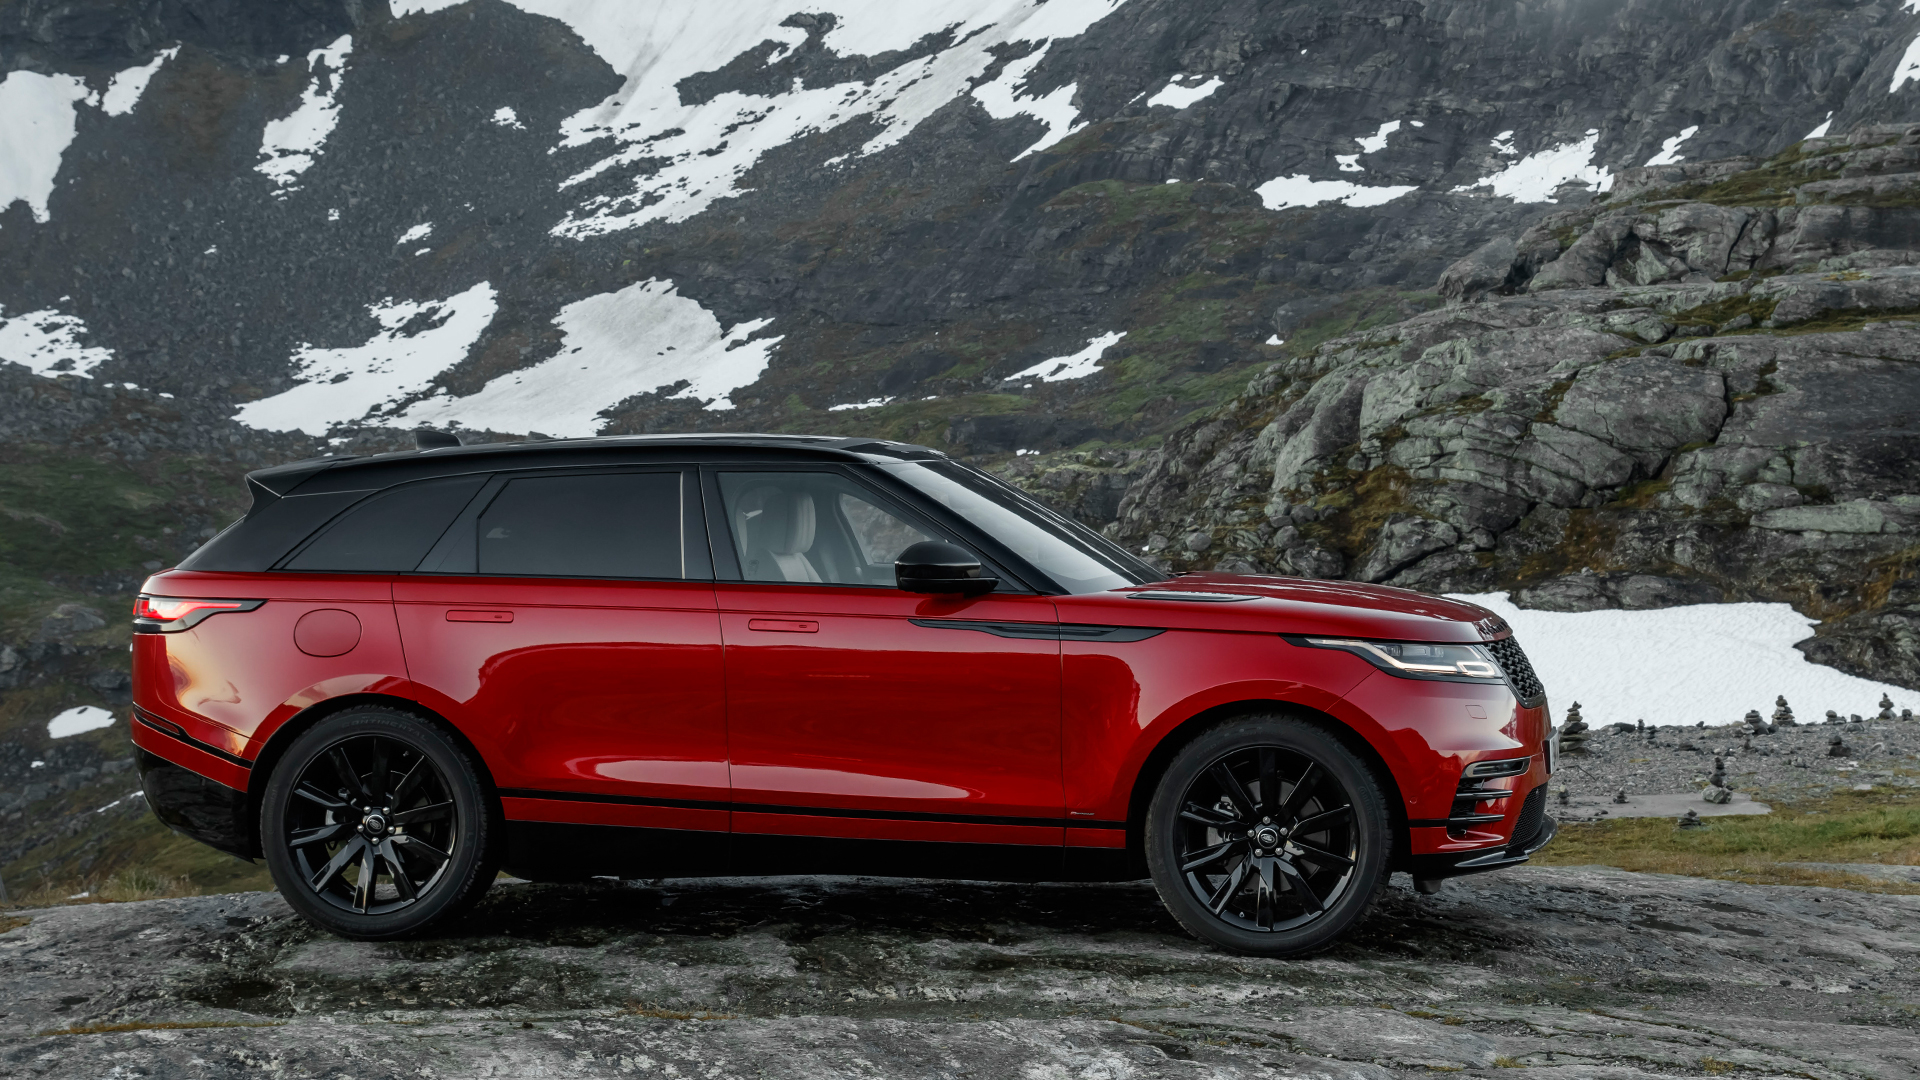 land rover range rover velar 2017 price mileage reviews specification gallery overdrive. Black Bedroom Furniture Sets. Home Design Ideas